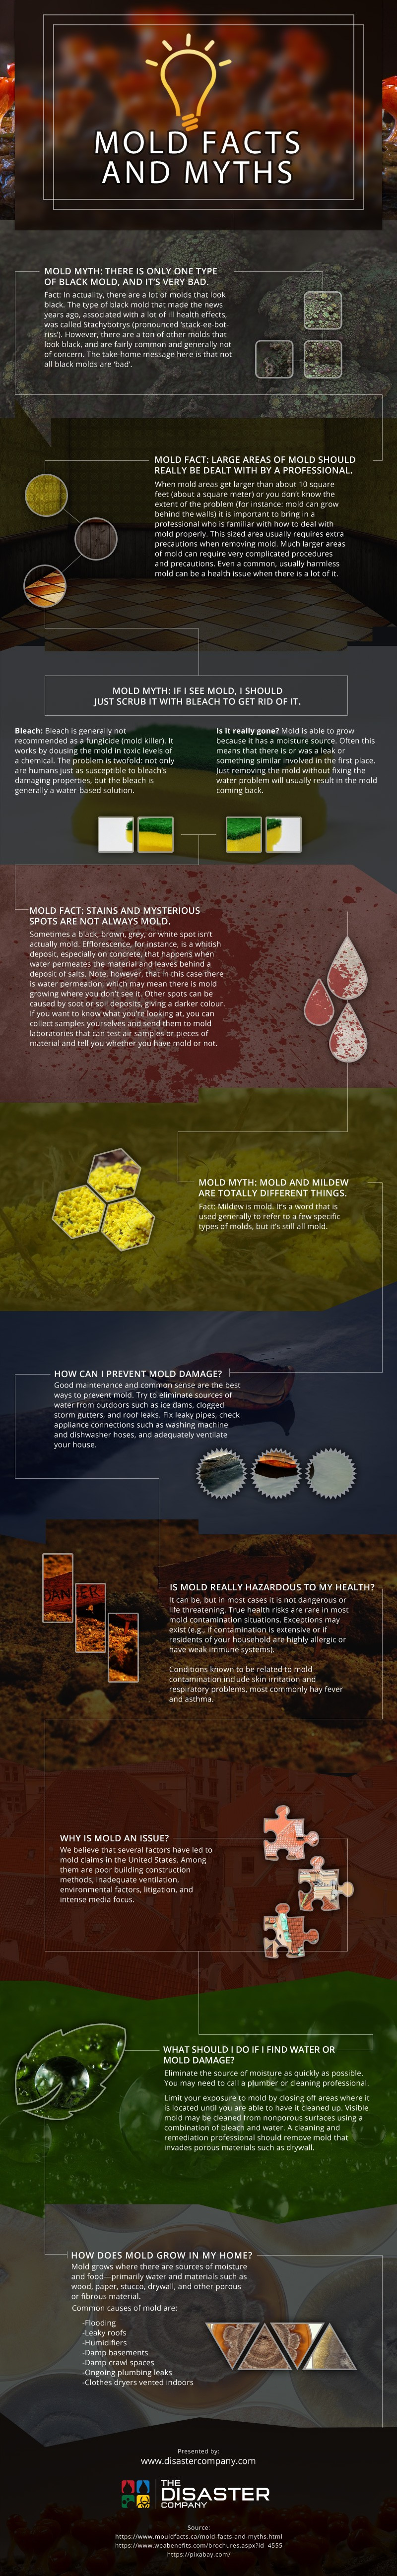 Mold-Facts-and-Myths Infographic